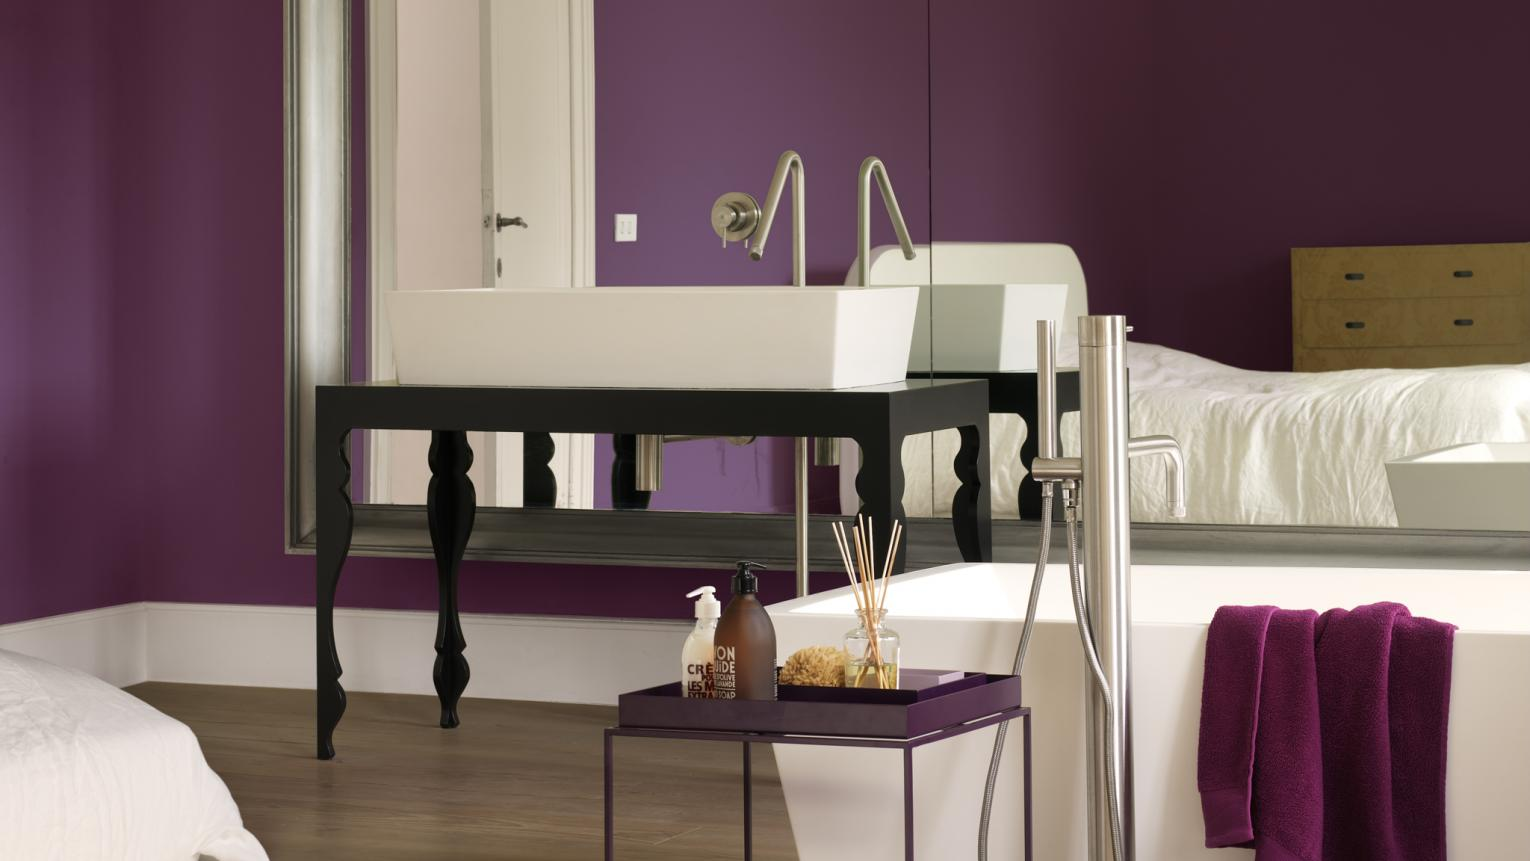 Let luxury reign in the bathroom with a regal shade of purple.